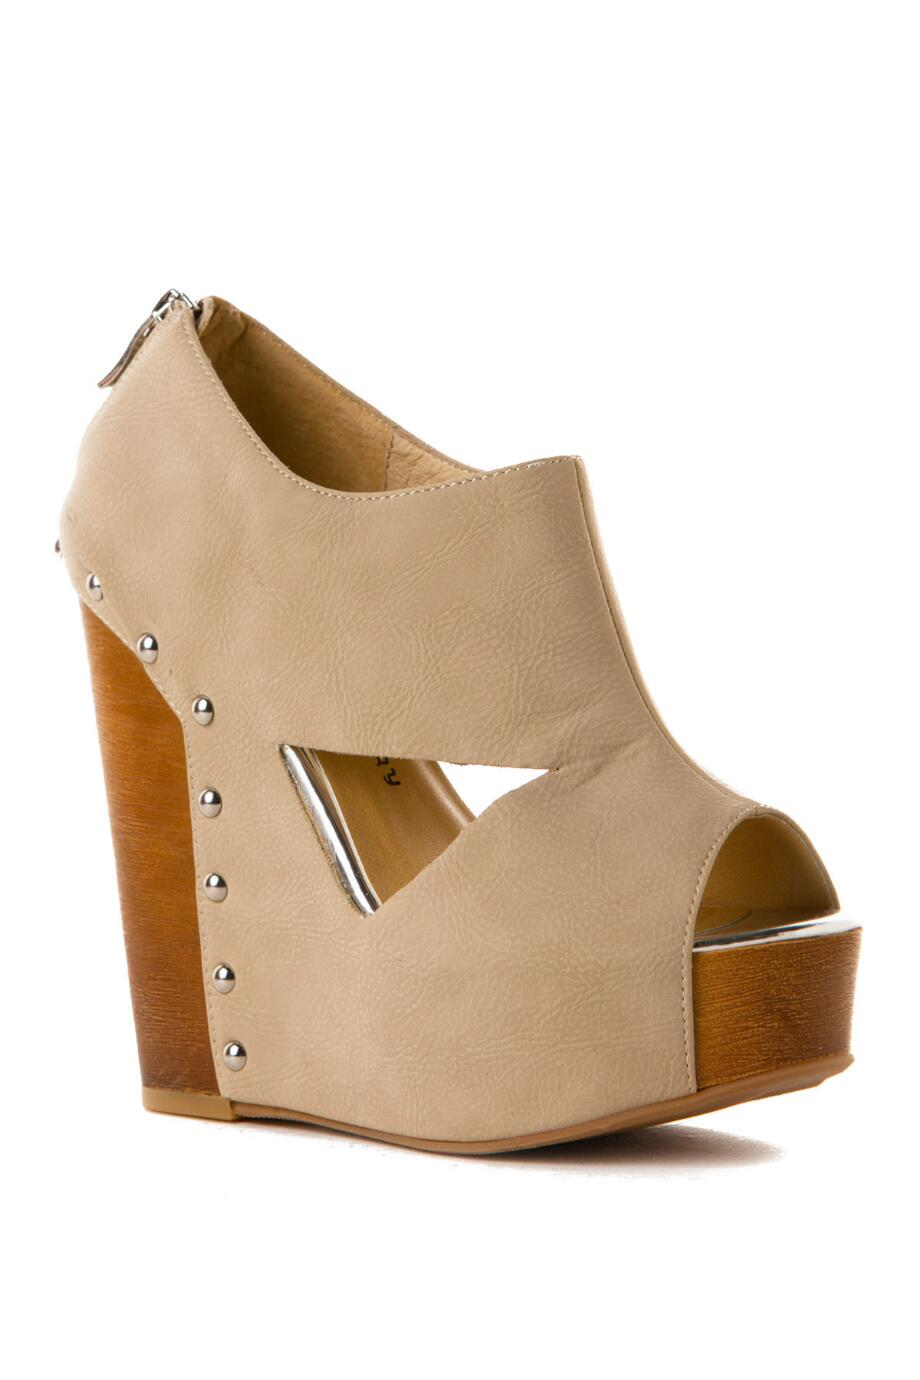 d66d9a011a Chinese Laundry Jam Session Studded Wedge in Beige francesca s